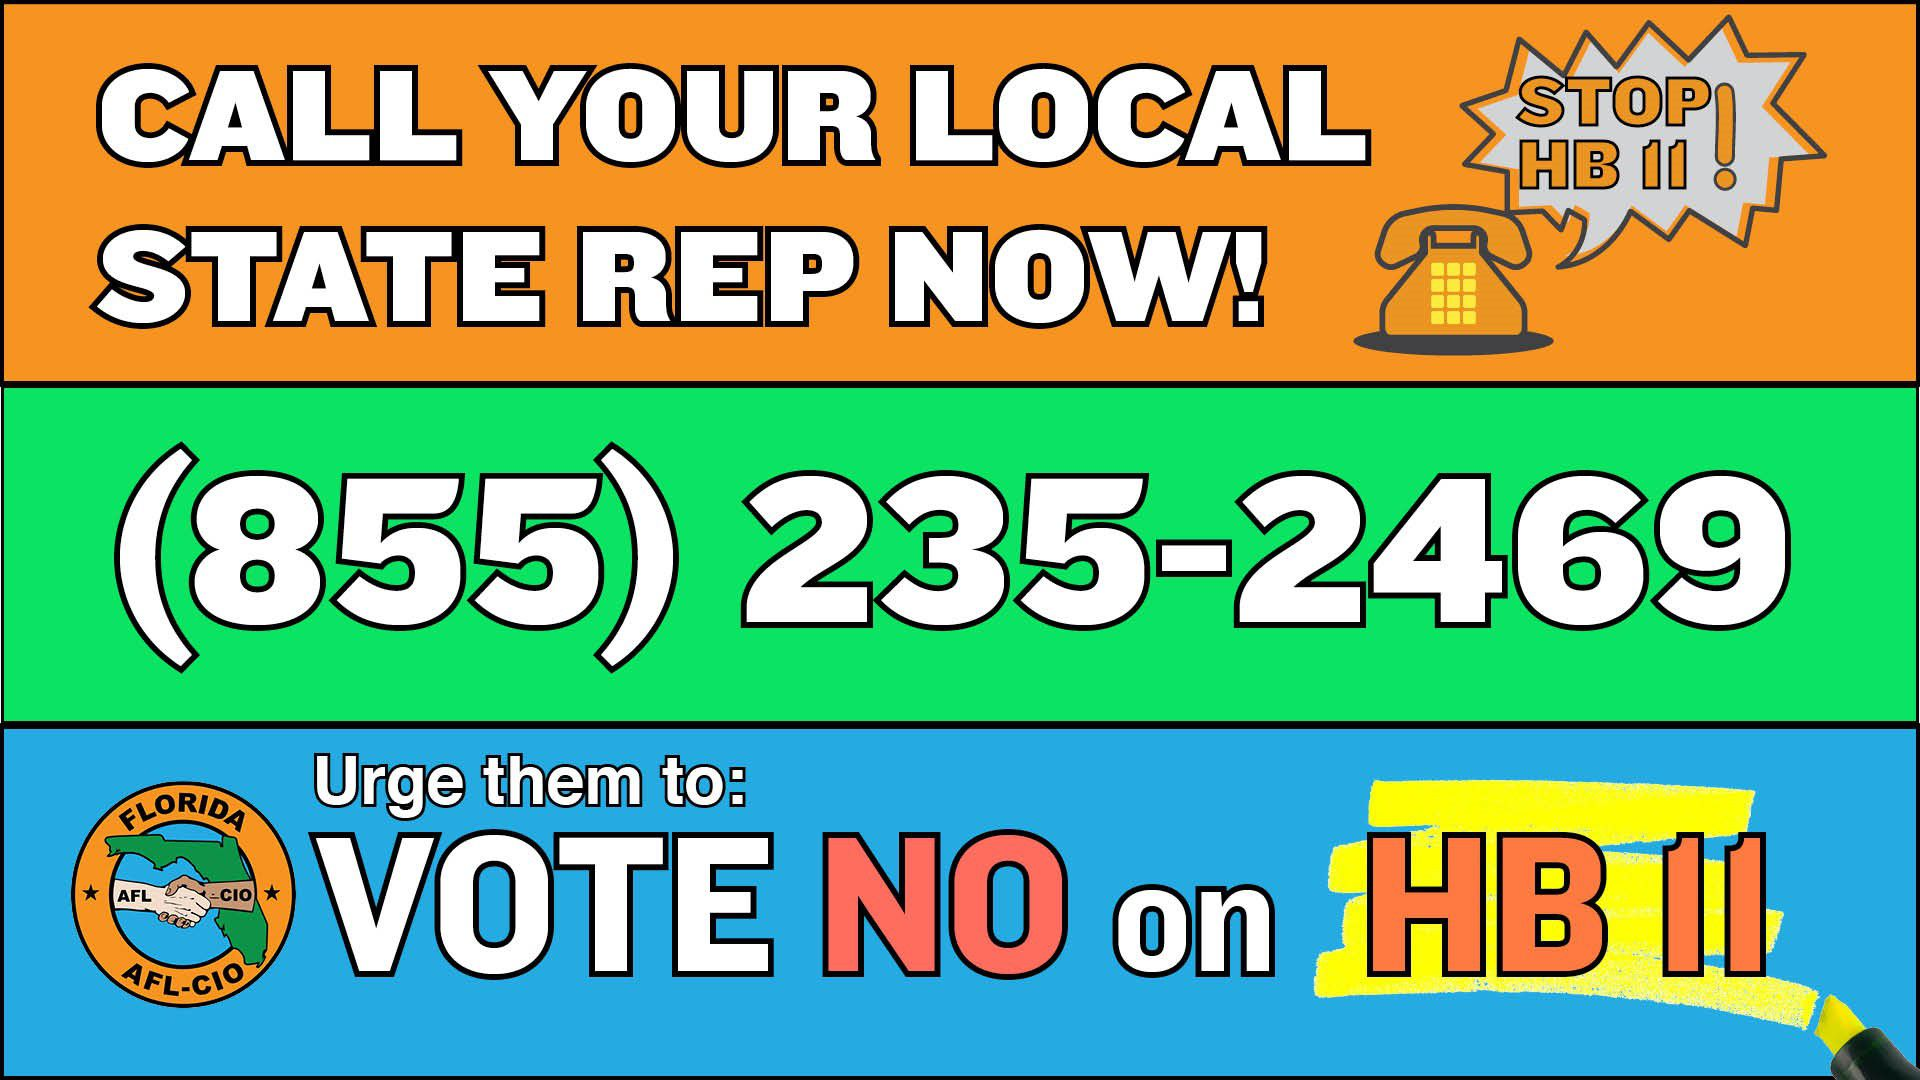 Call Your Local State Rep Now.jpg